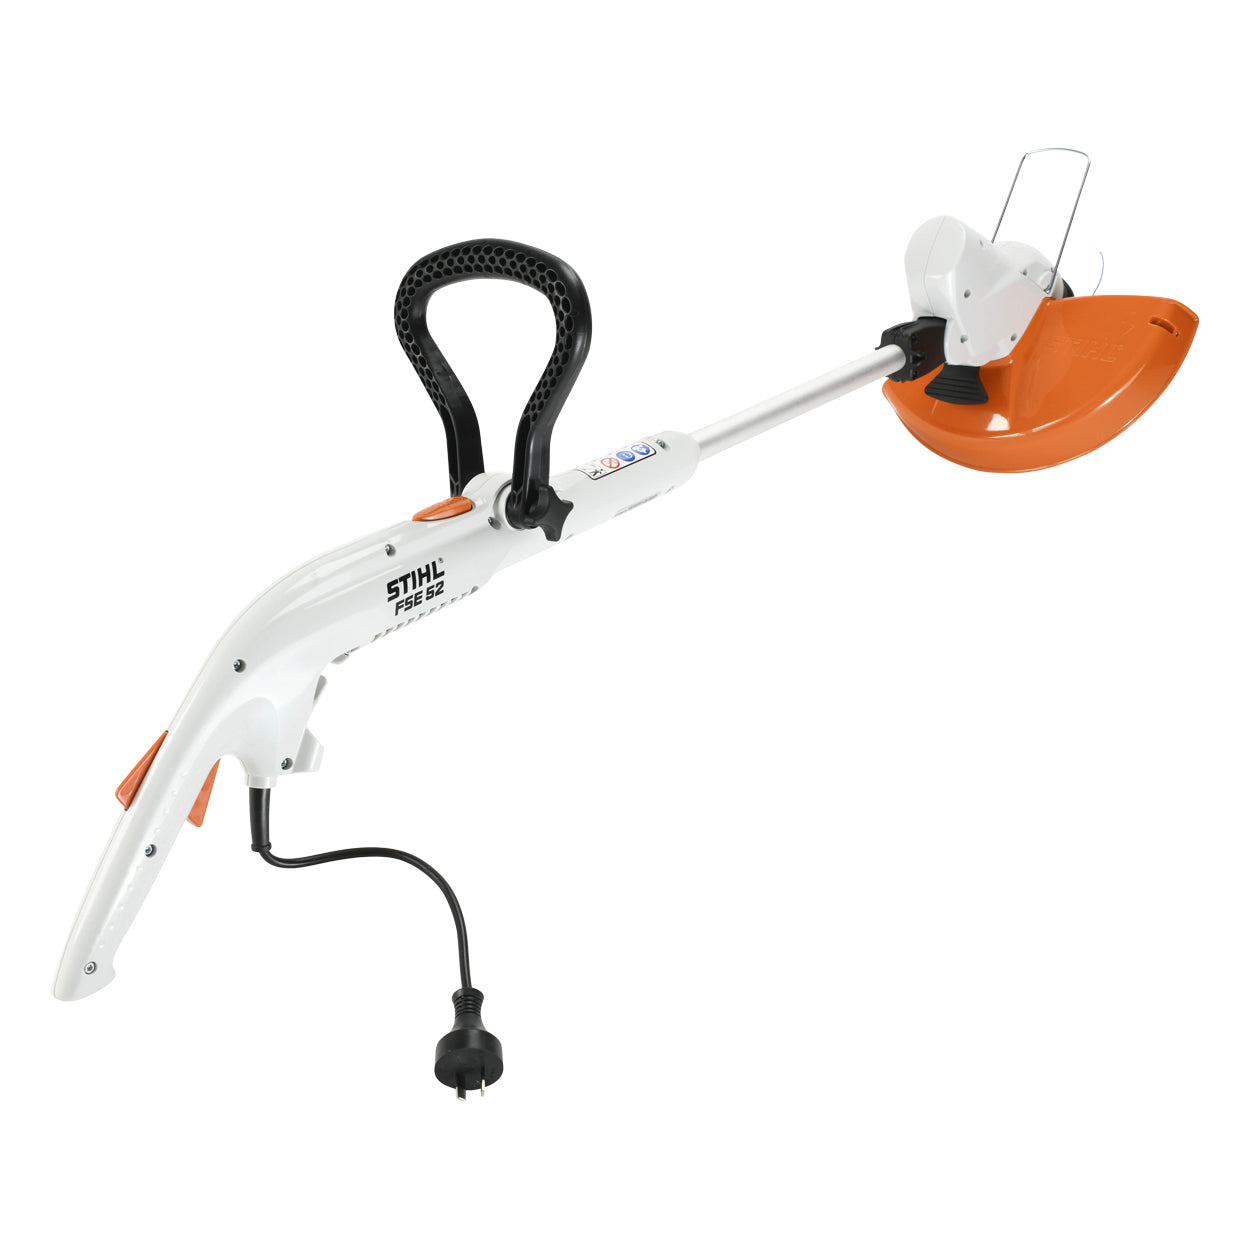 Stihl FSE52 Electric Whipper Snipper